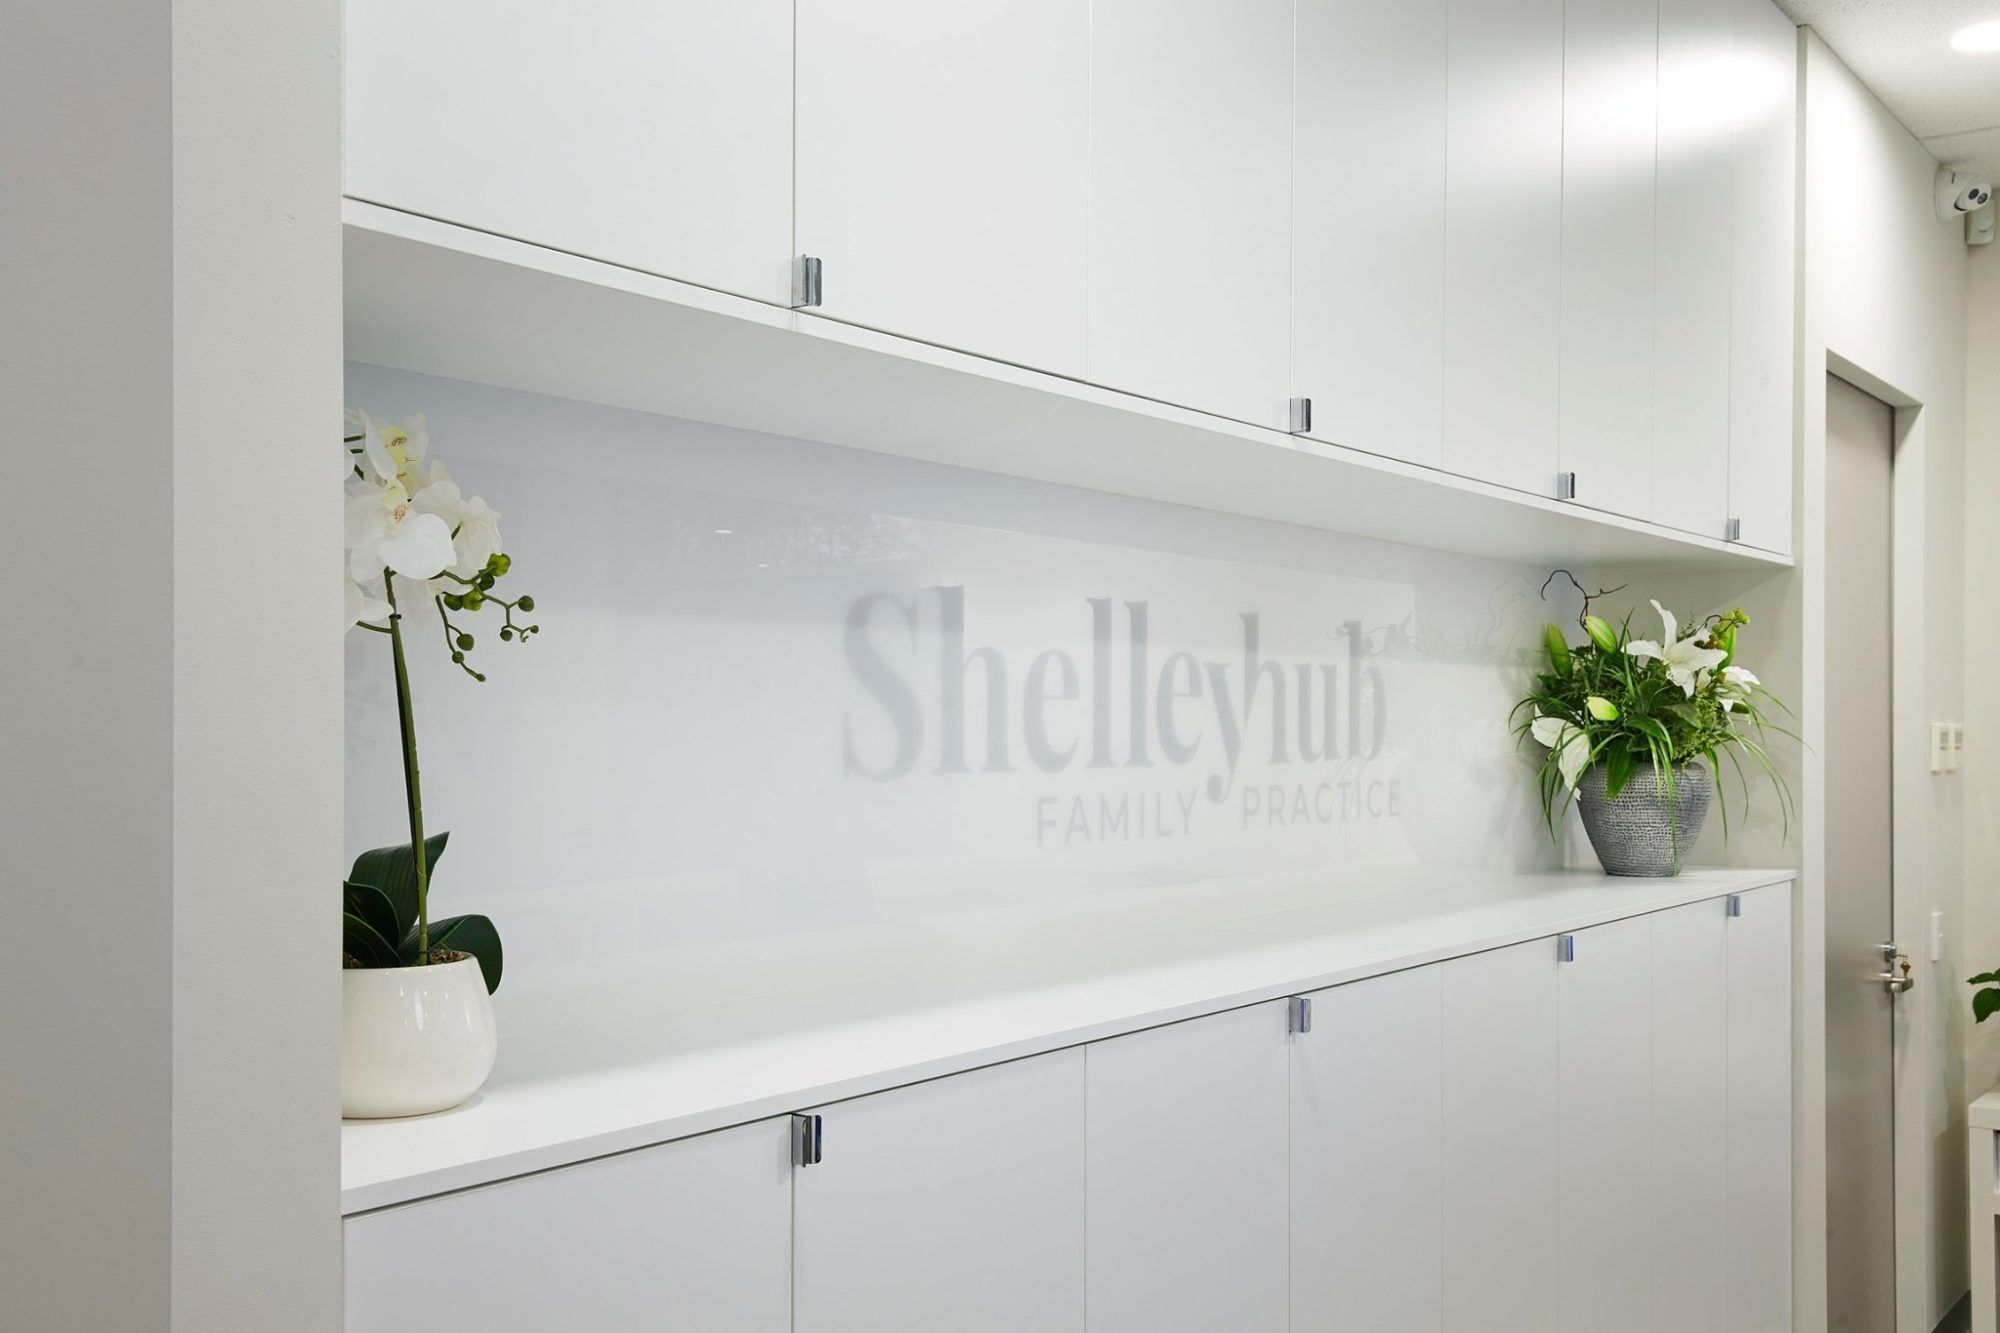 Reception decal